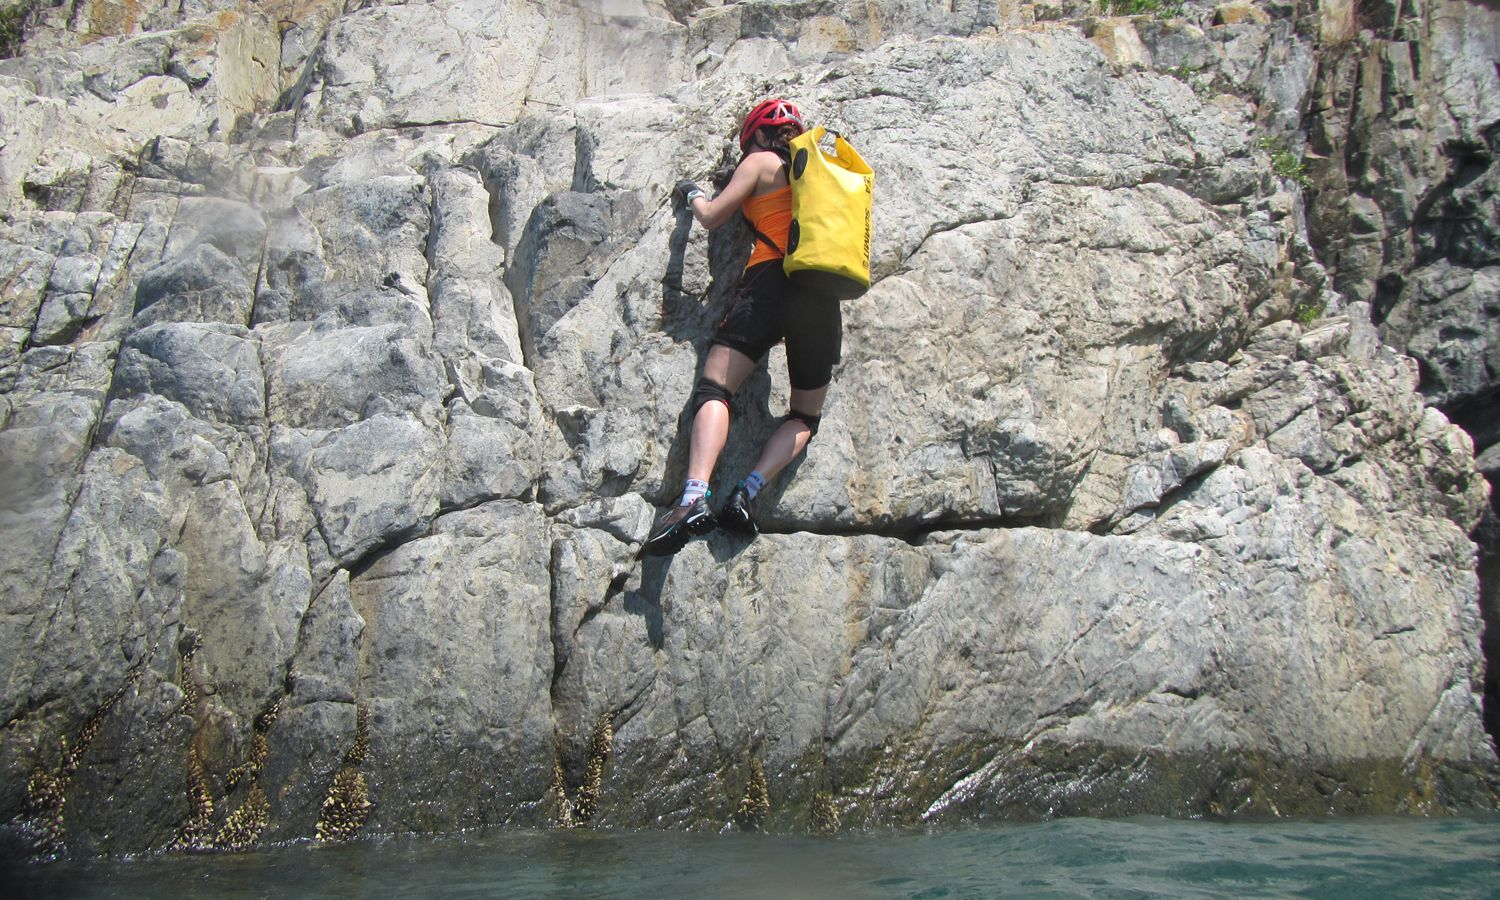 Coasteering: The Eco Adventure Sport You Need To Know About